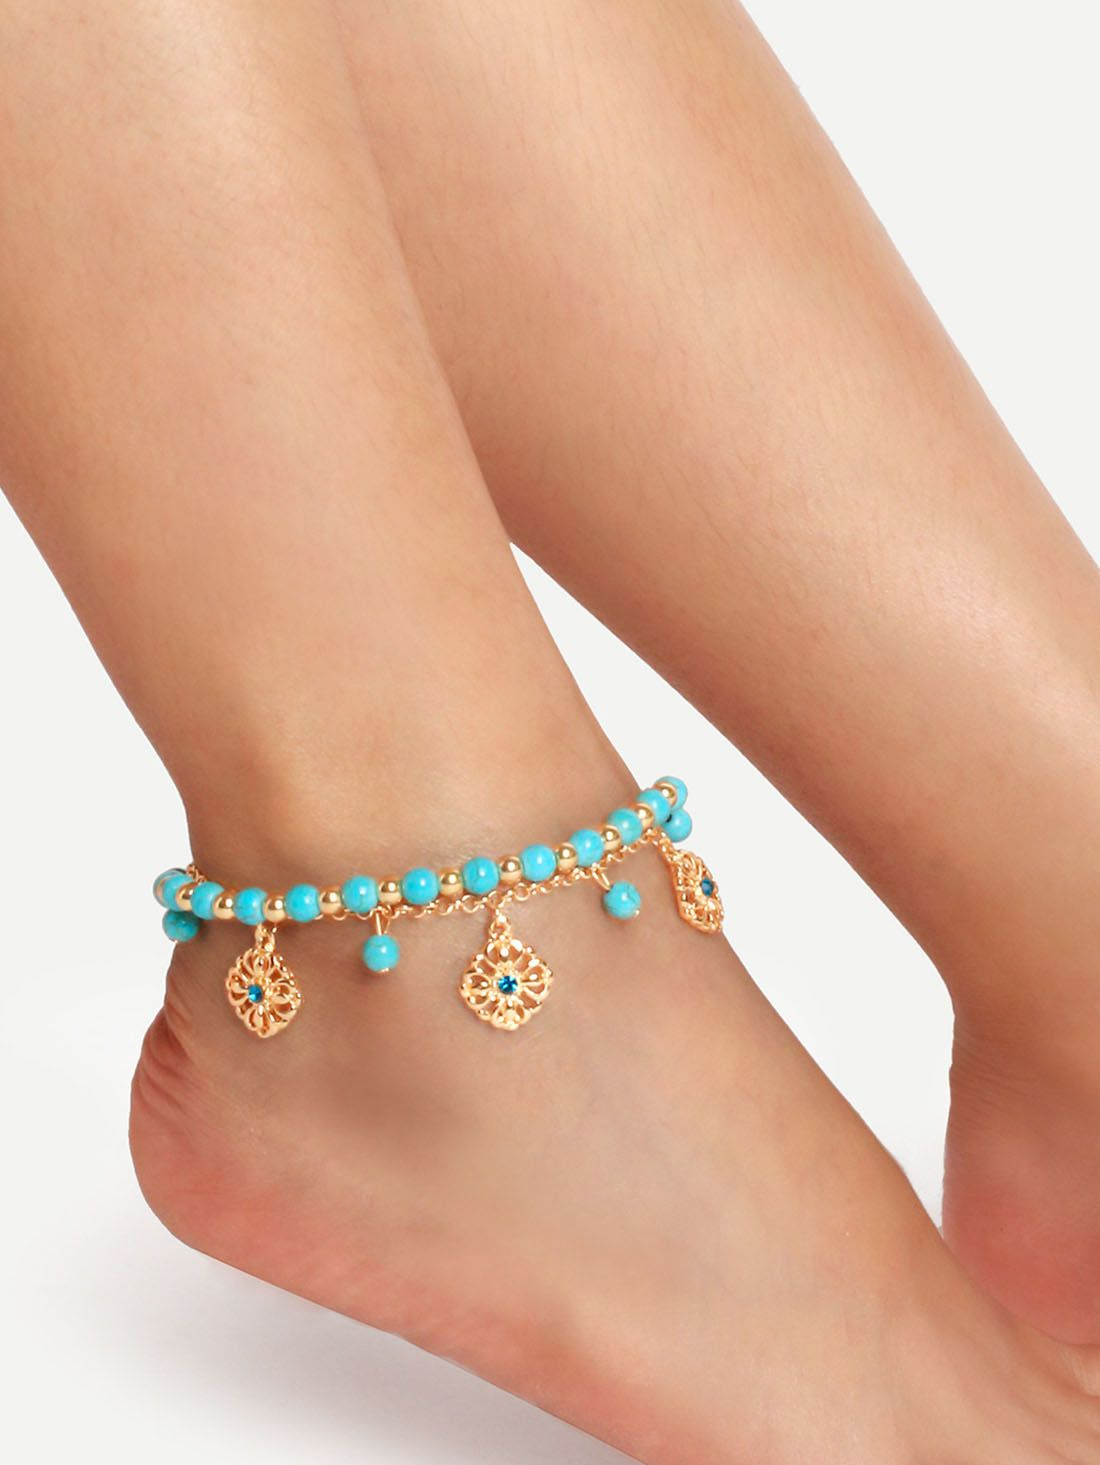 gold anklet bloomingdales bracelets dollar bloomingdale in sand bracelet gallery jewelry designer ankle lyst s yellow